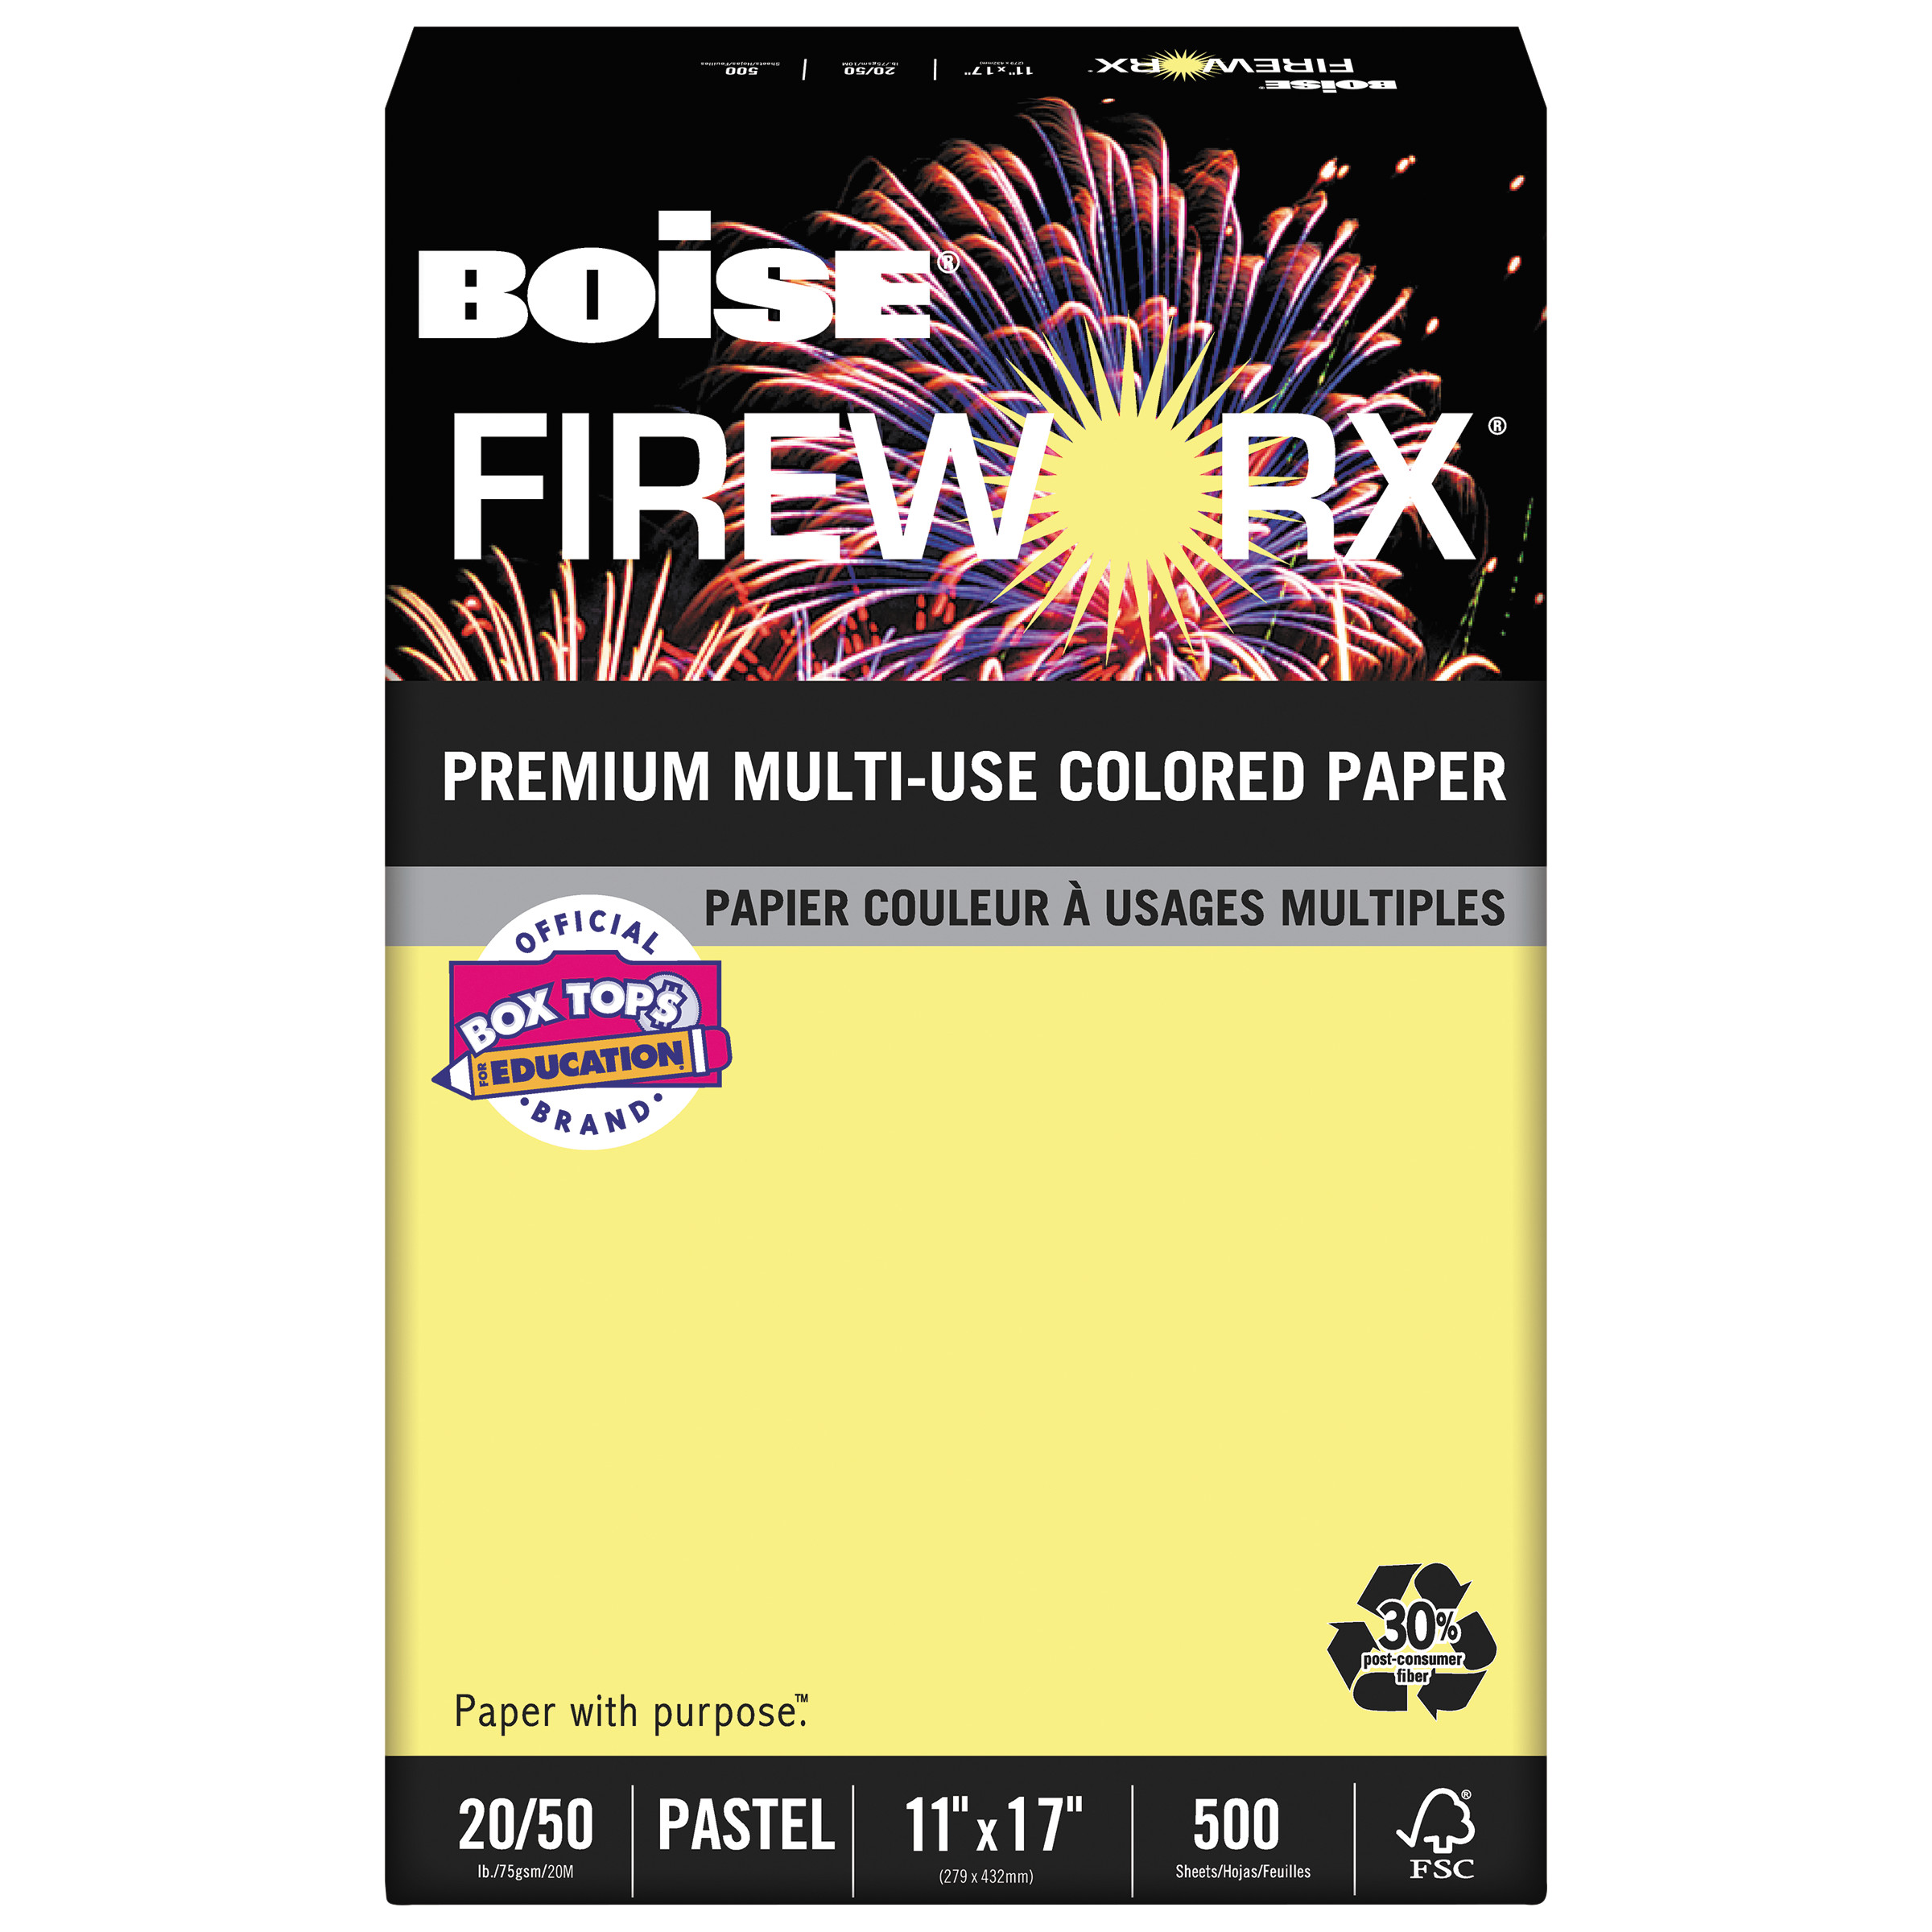 Boise FIREWORX Colored Paper, 20lb, 11 x 17, Crackling Canary, 500 Sheets/Ream -CASMP2207CY